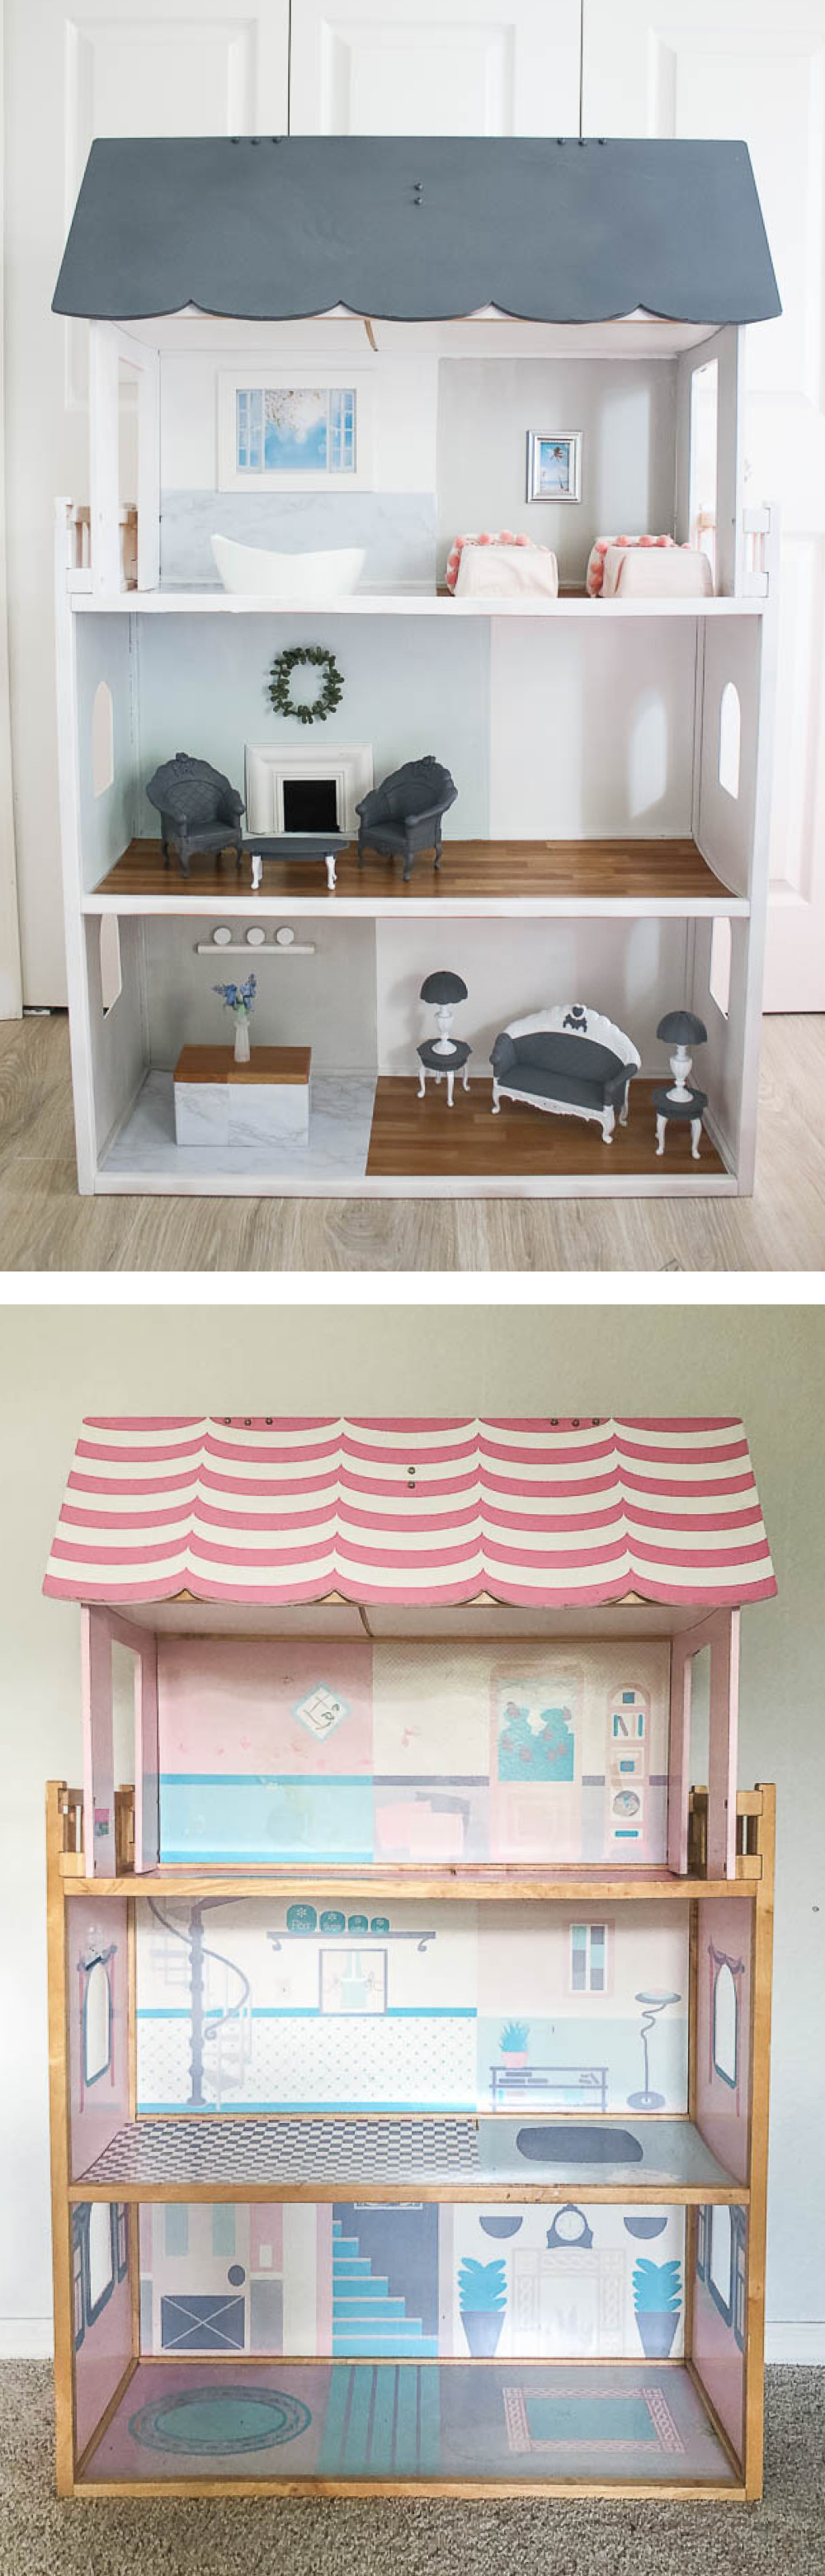 Before and after Barbie doll house makeover - spray paint and contact paper with DIY furniture